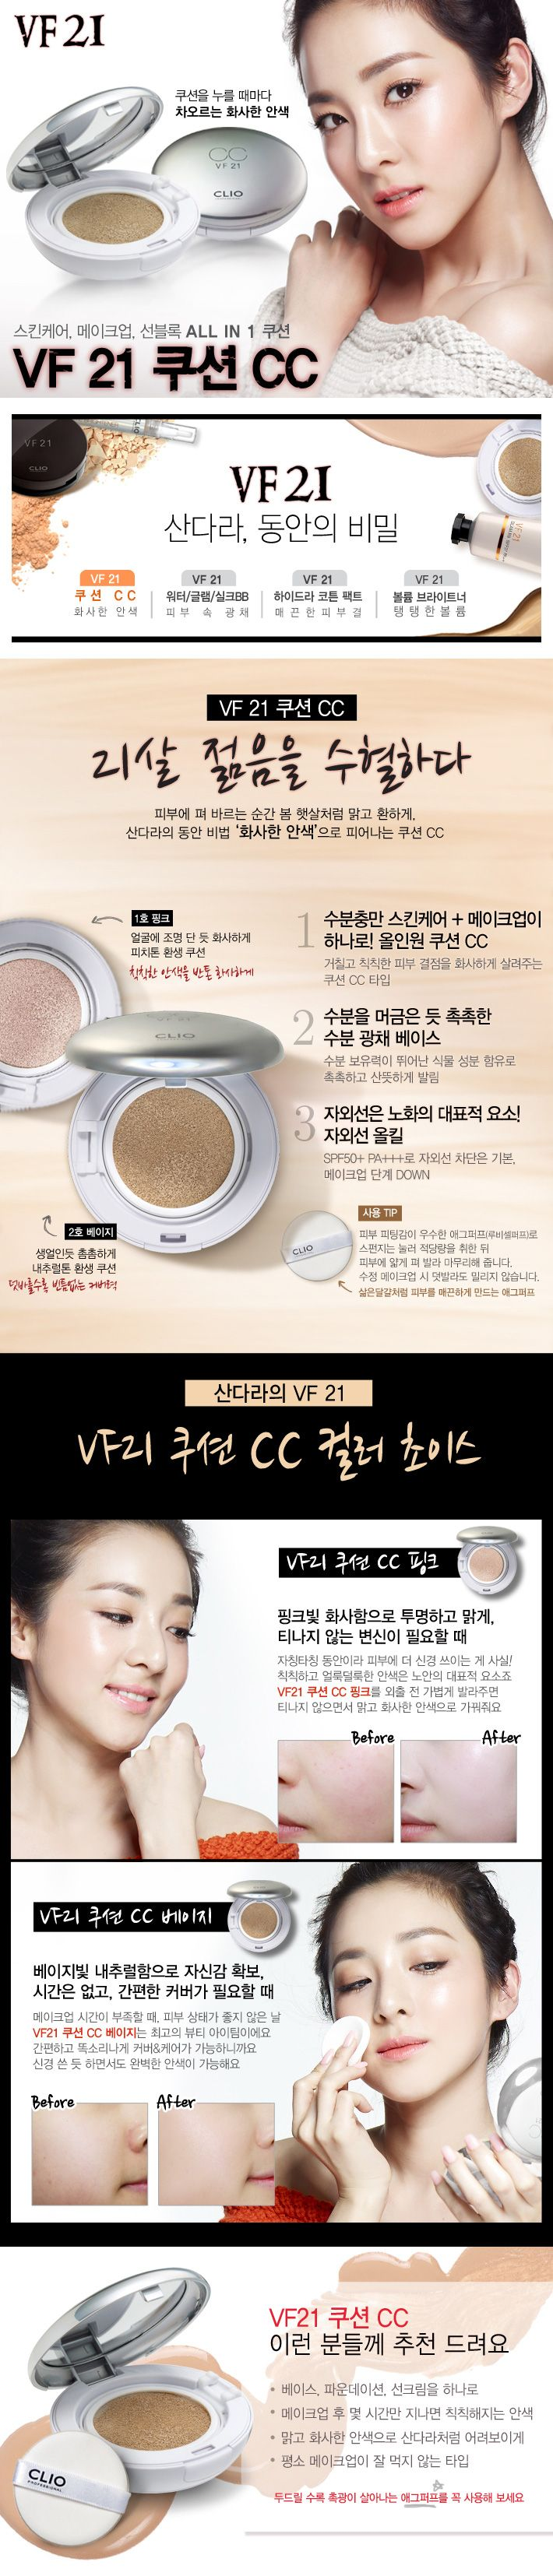 Clio VF21 Cushion CC Compact SPF 50PA    2 shades to choose from: Beige, Pink.   ✨www.SkincareInKorea.info ✨www.DebbieKrug.org